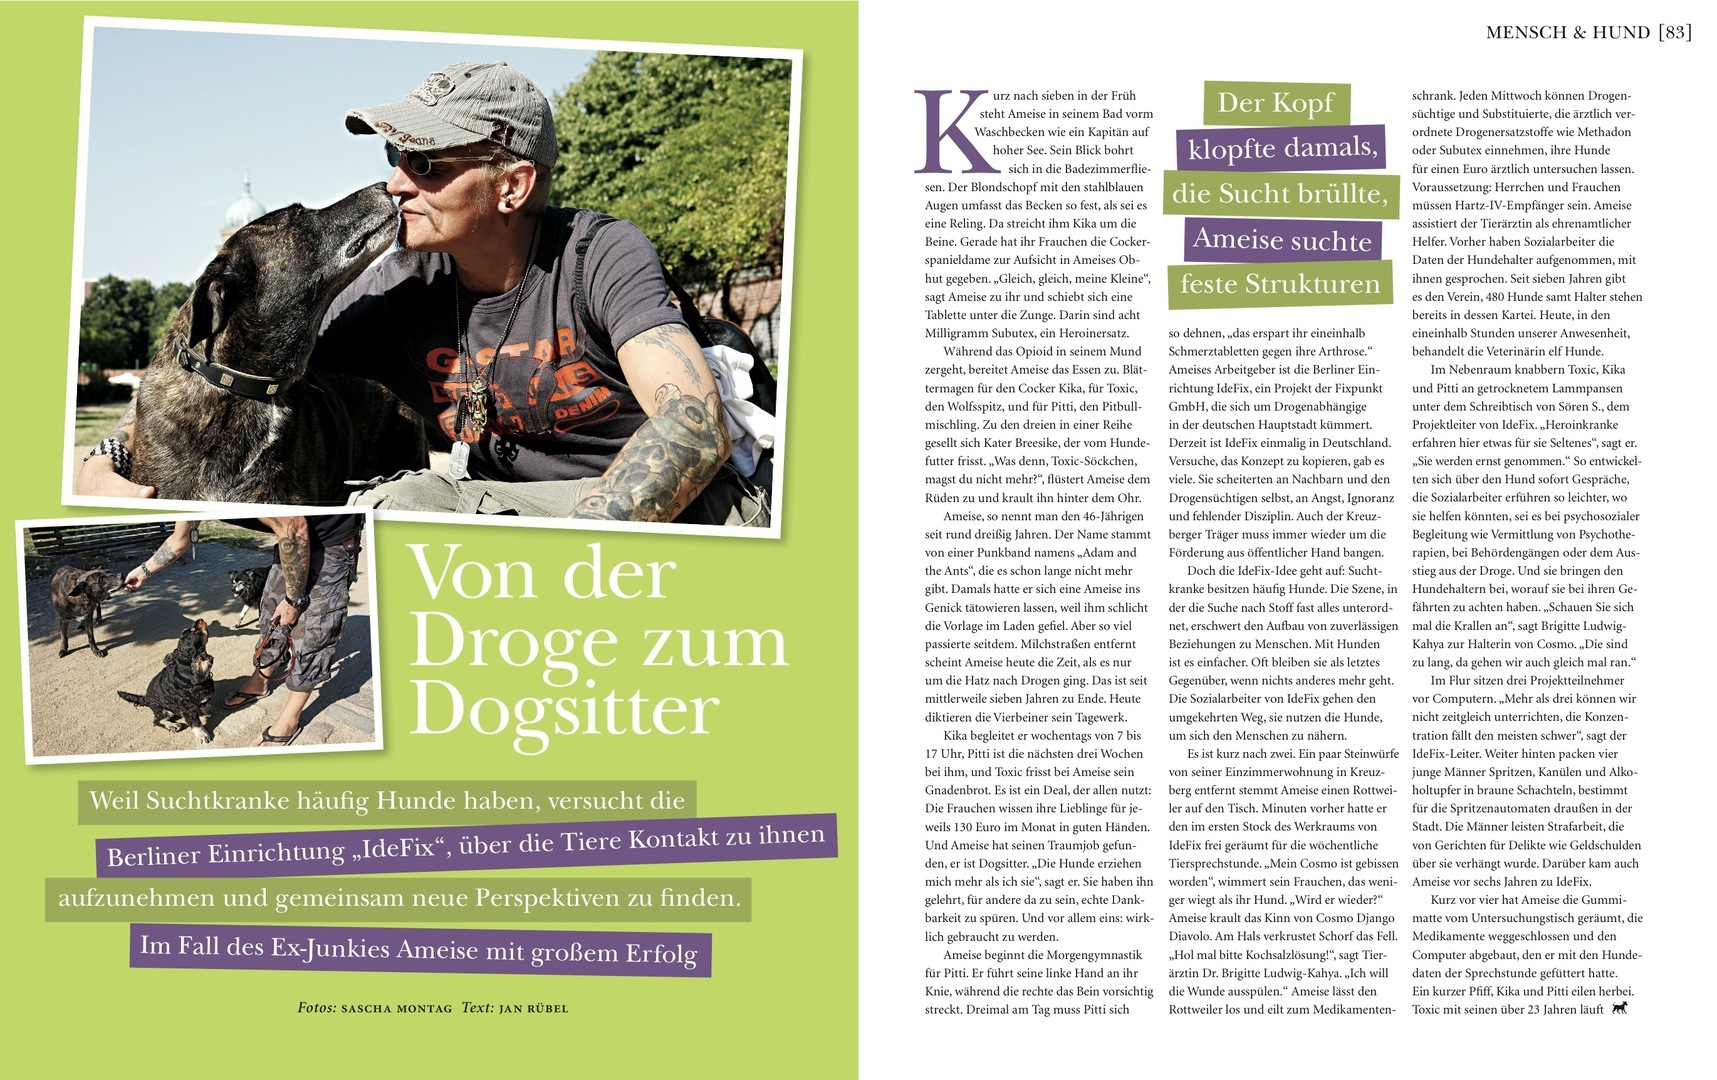 Dogs Magazin März/April 2010